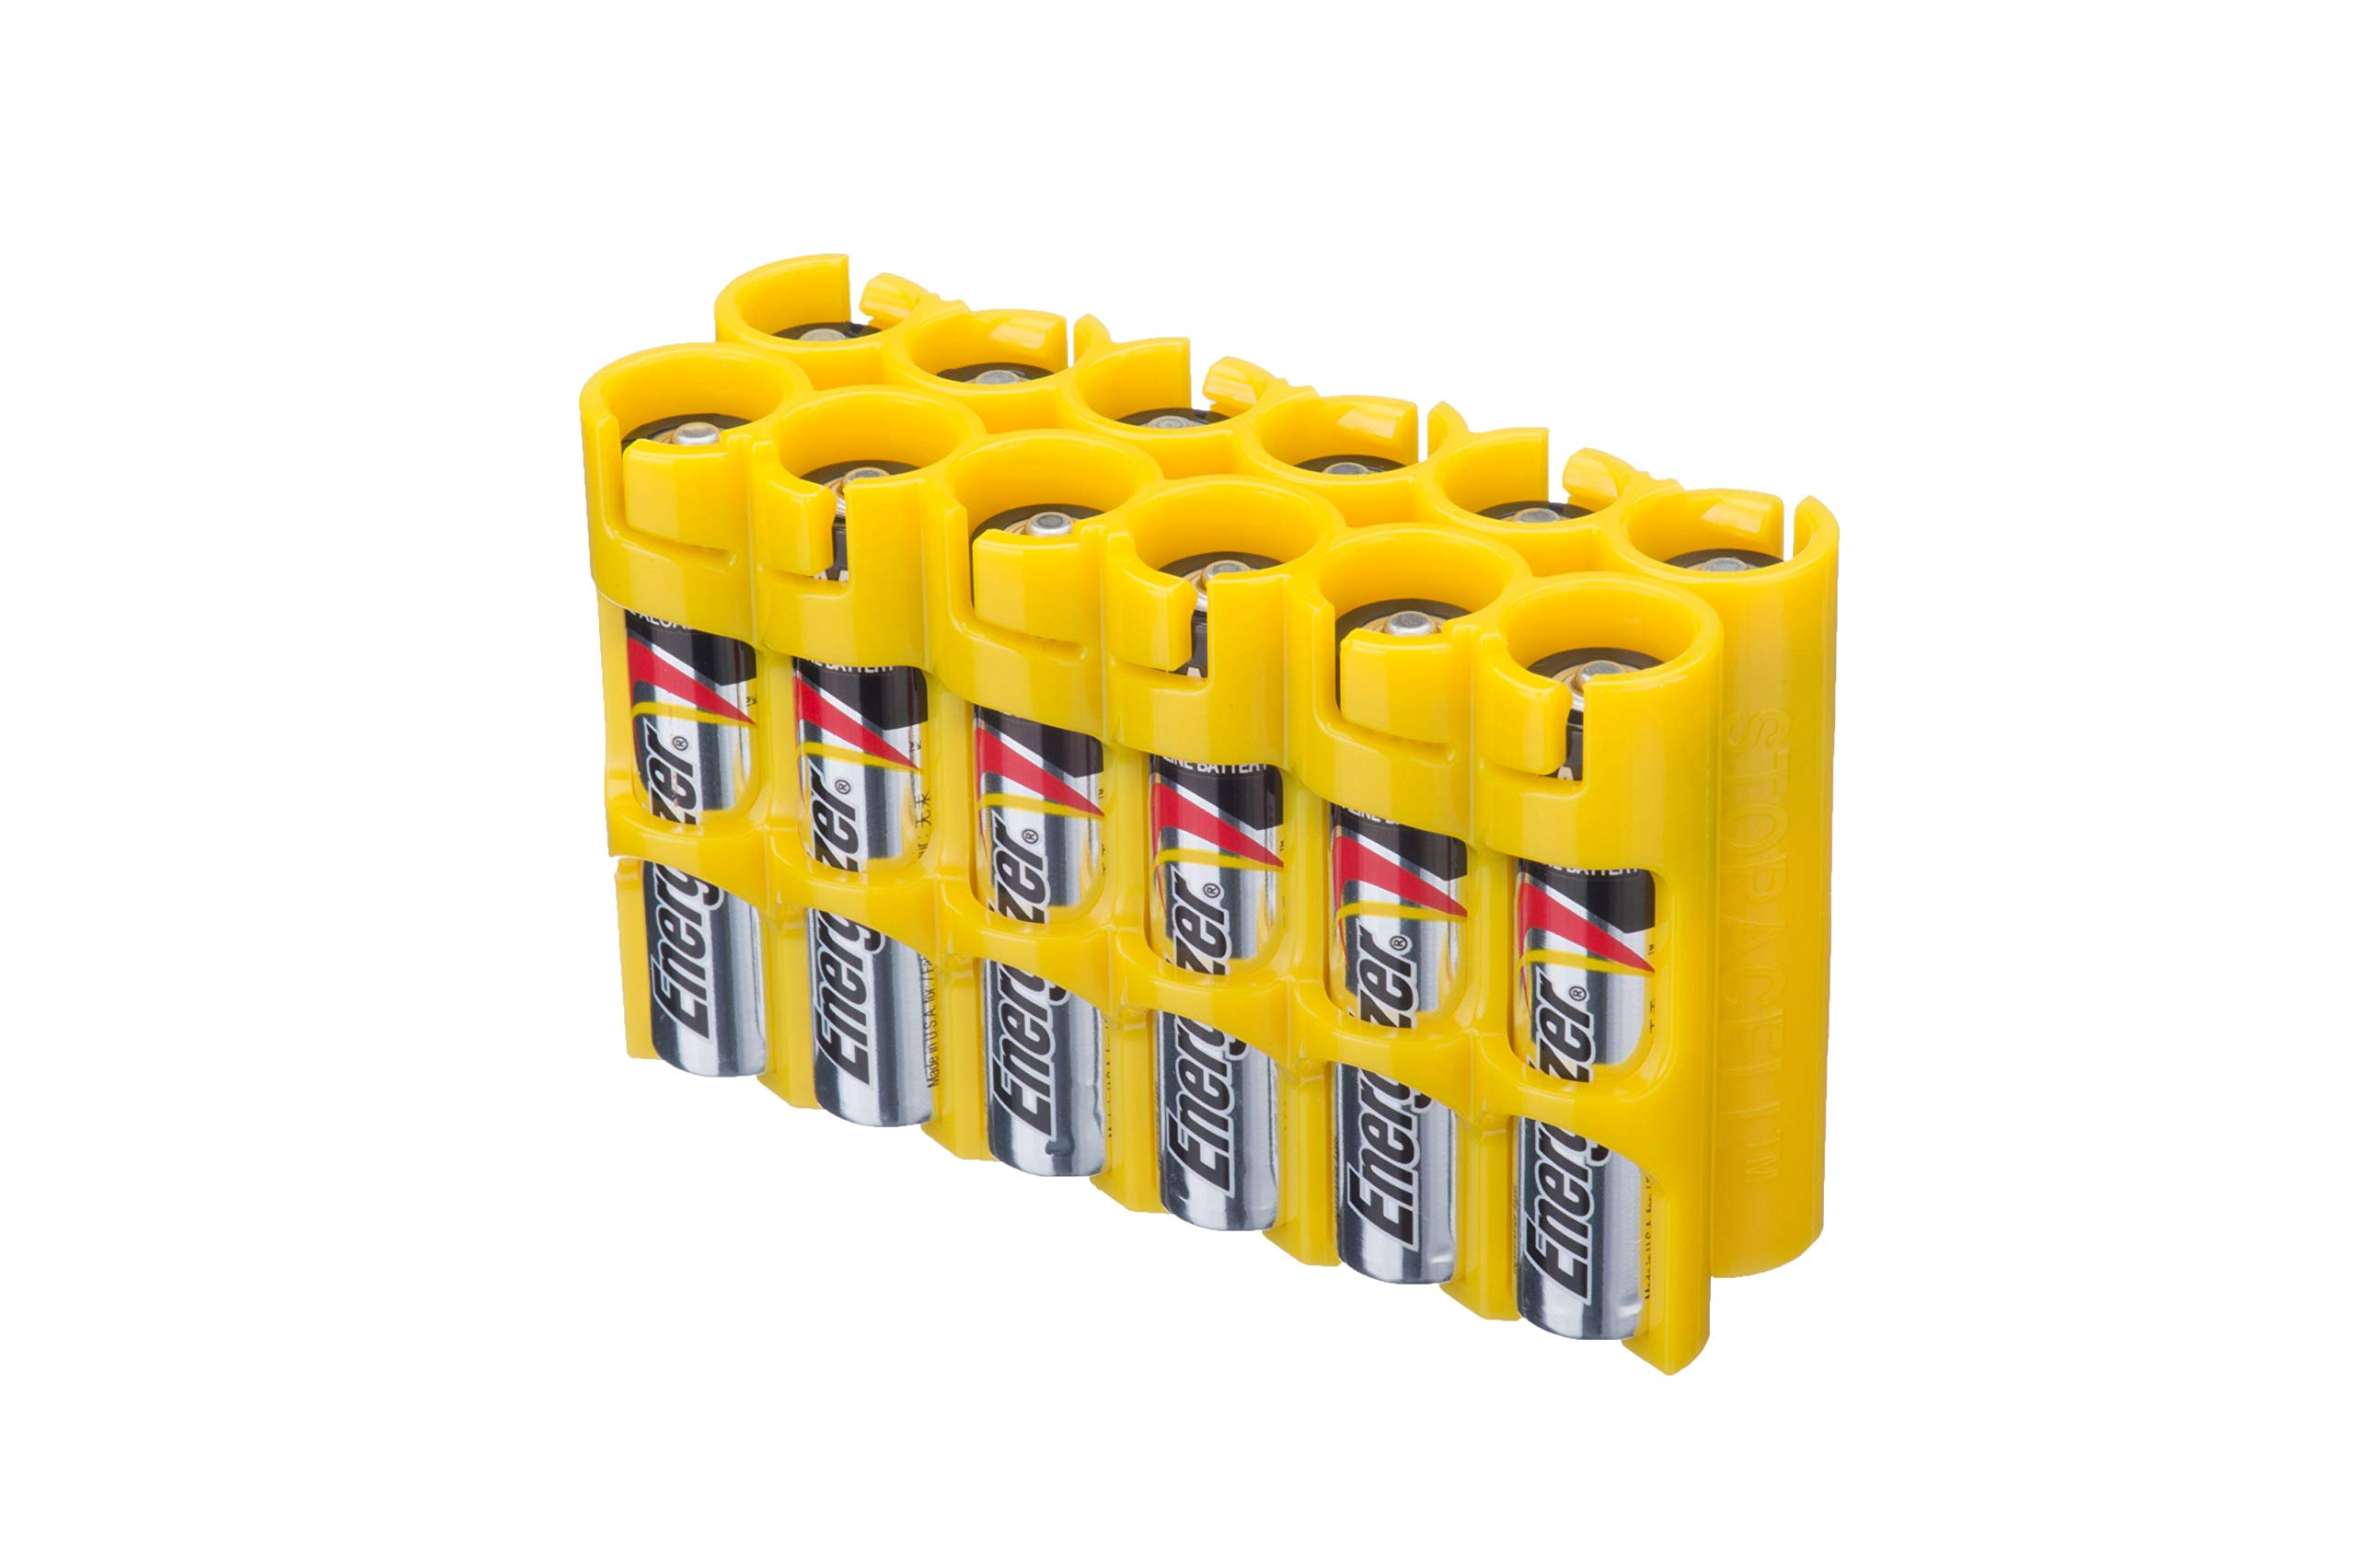 Storacell by Powerpax AAA Battery Caddy, Yellow, Holds 12 Batteries